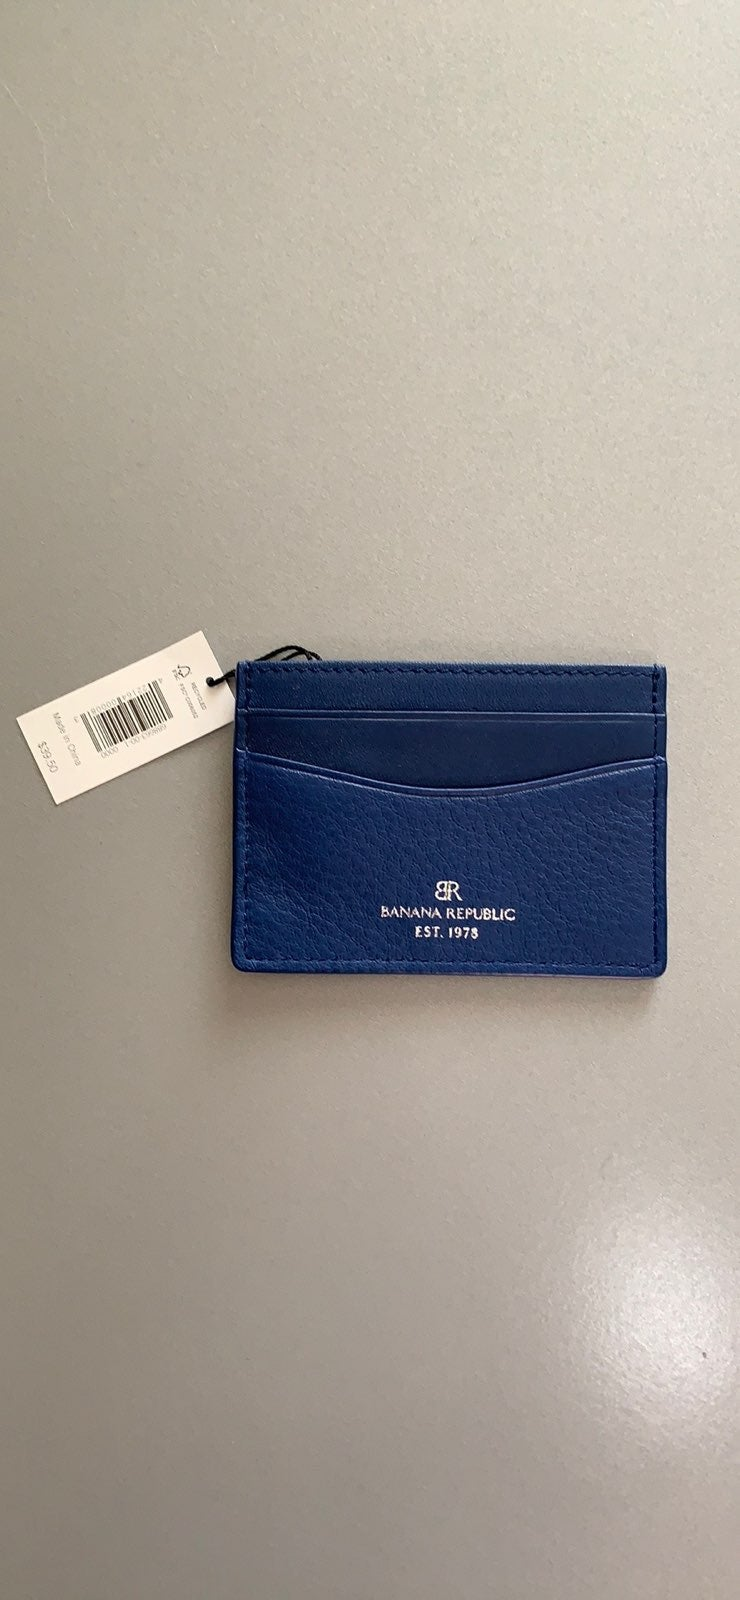 Banana Republic blue leather card holder